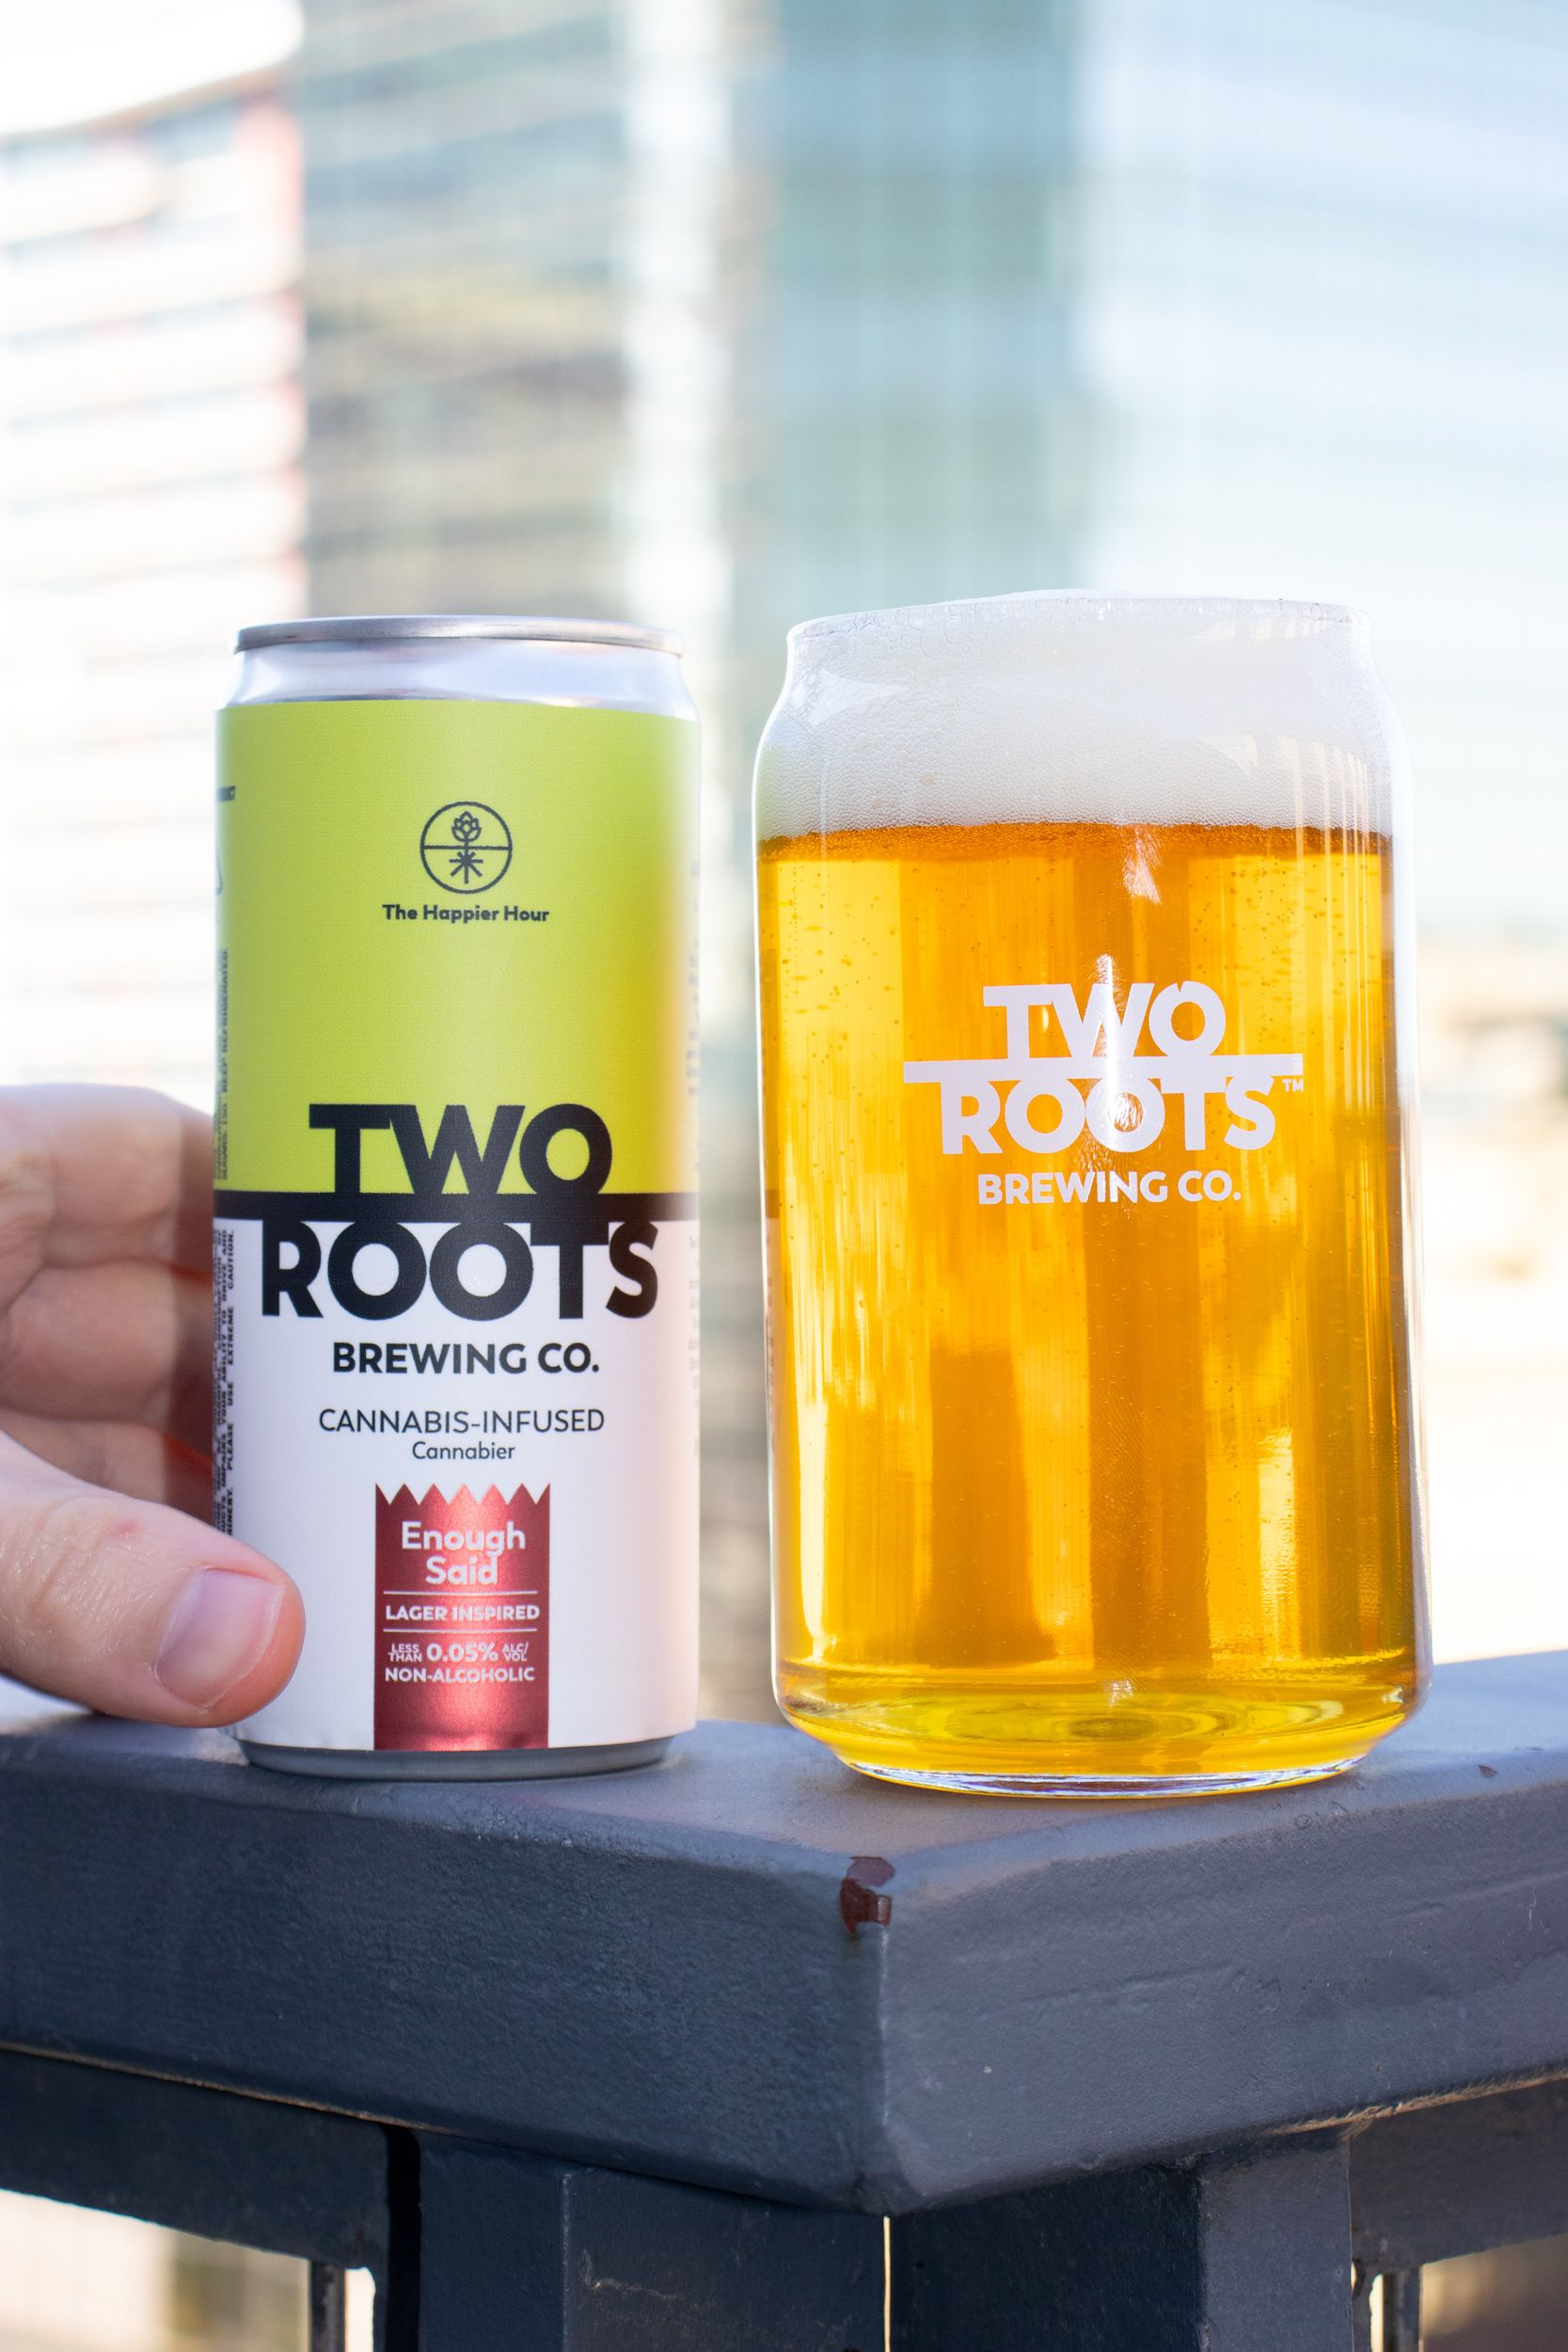 Two Roots Brewing Co Is Now Selling Cannabis-Infused Craft Beer That's A Healthy Alternative To Alcohol